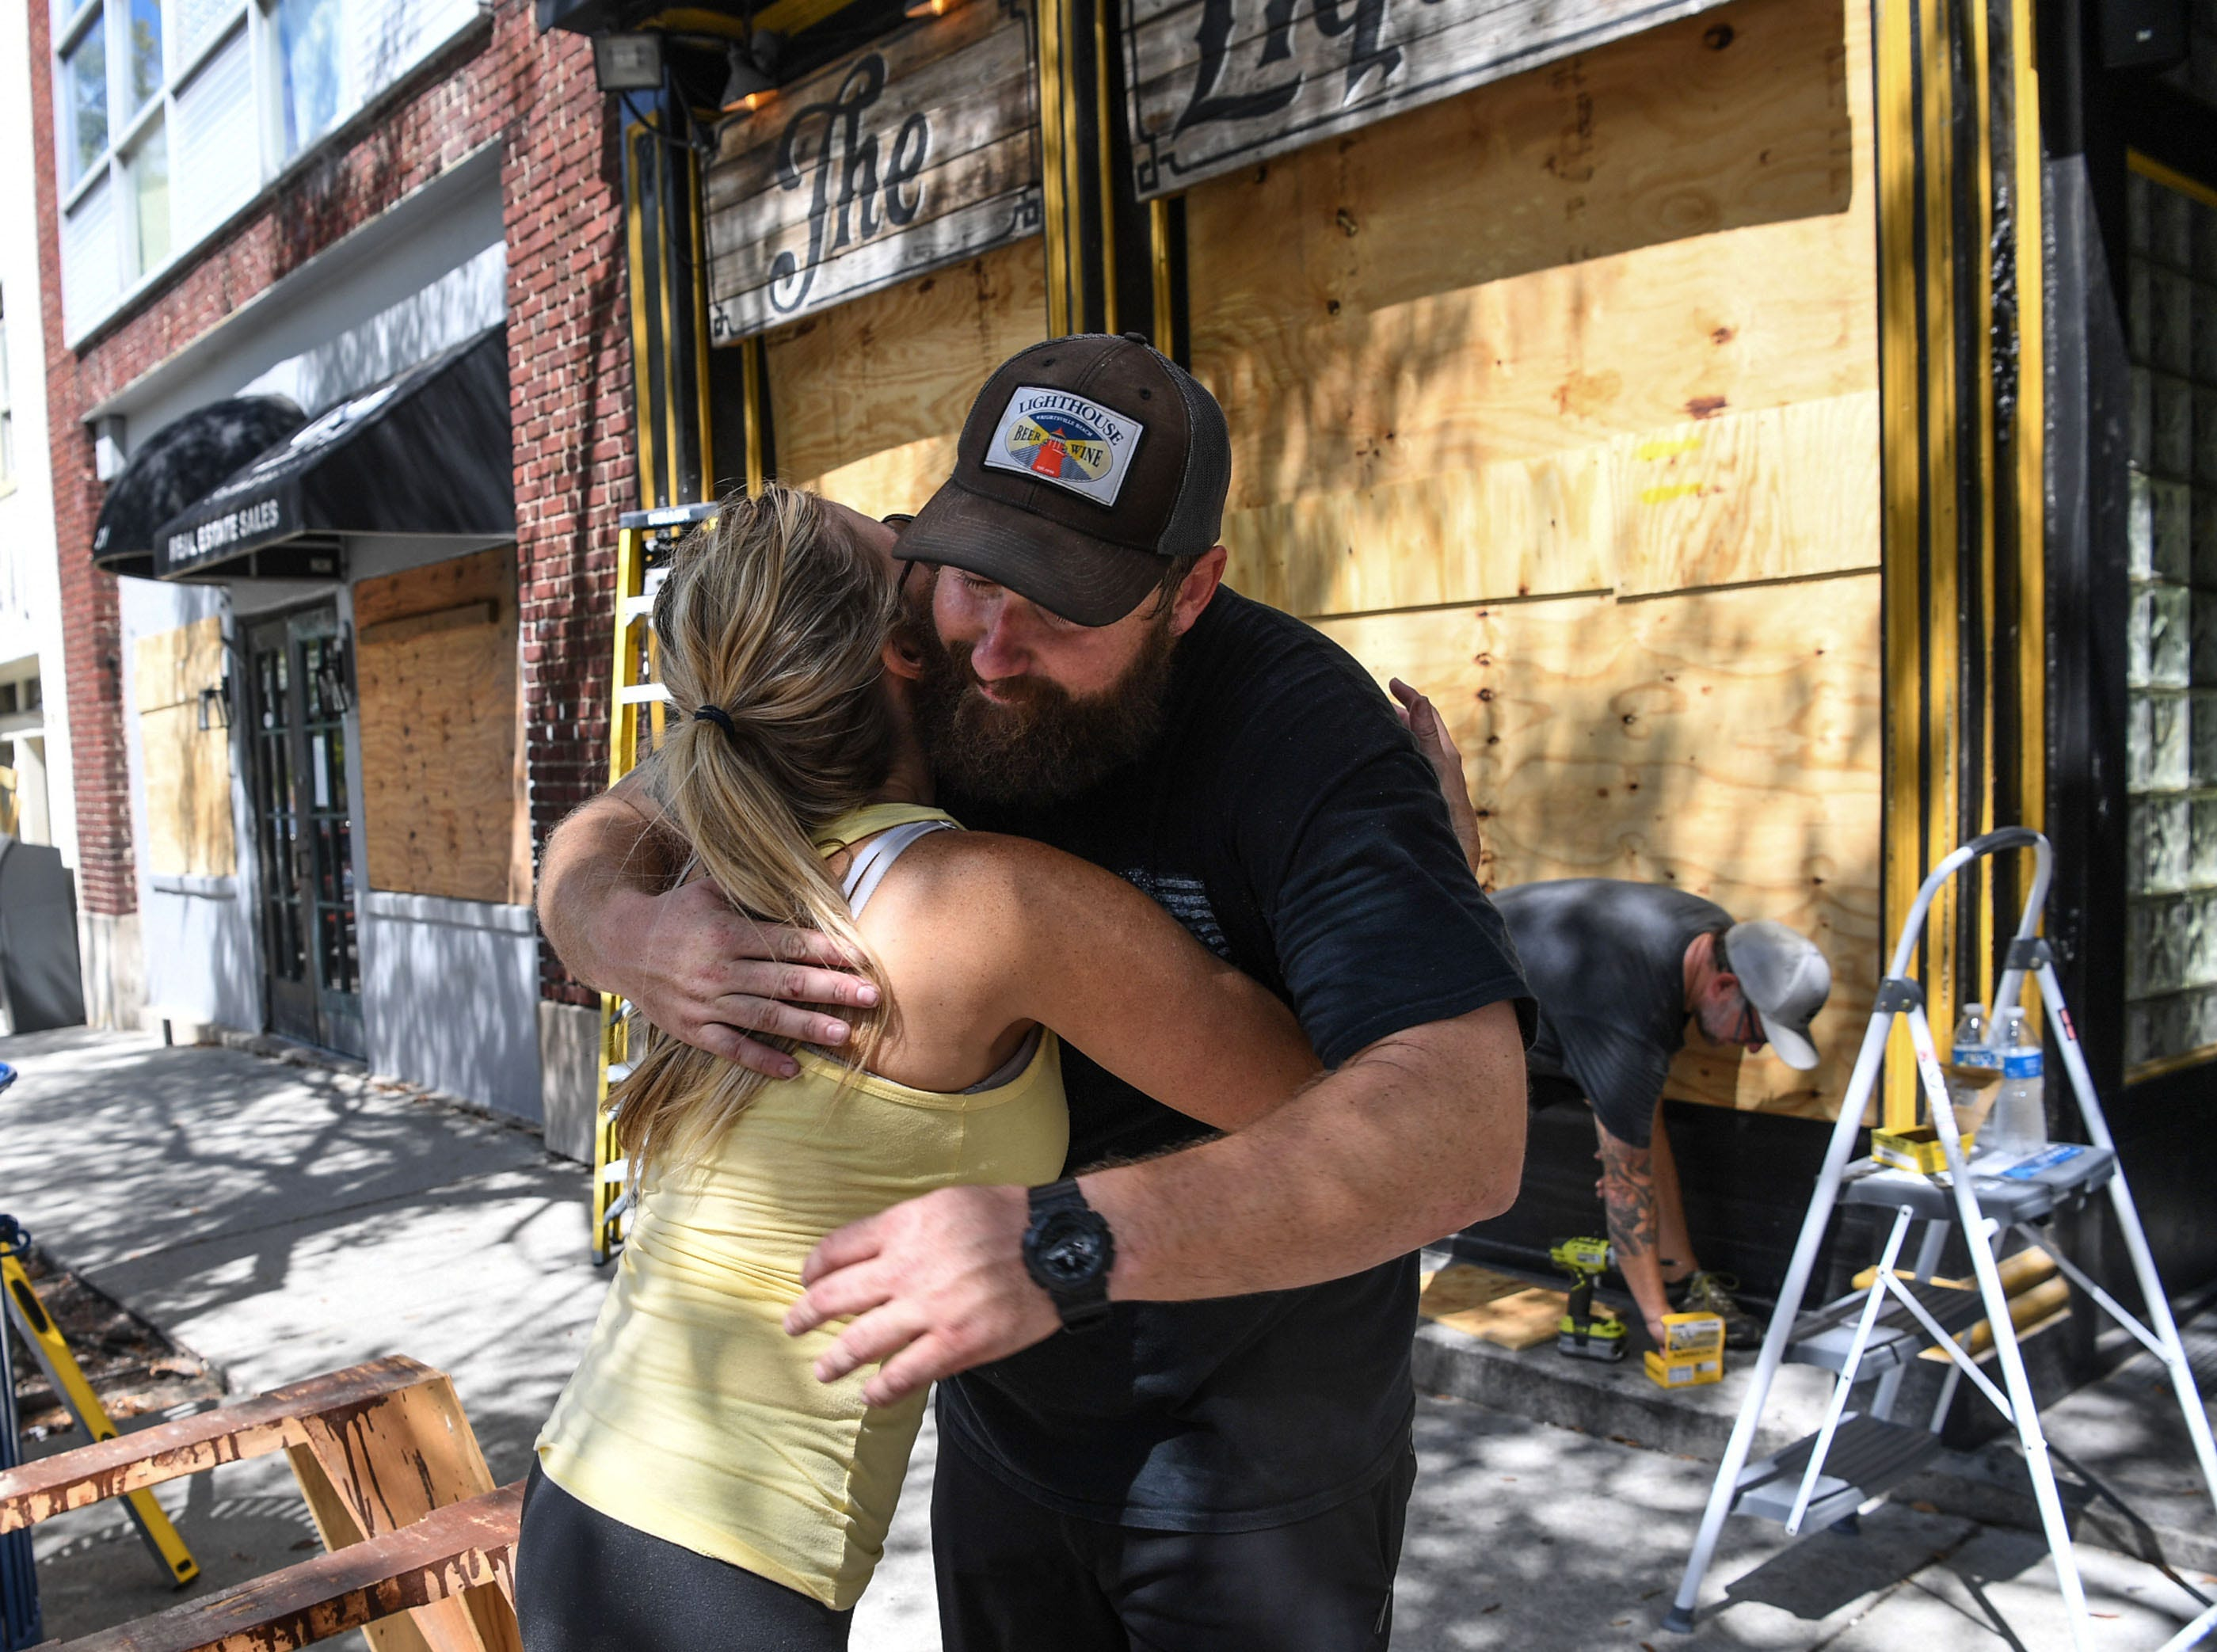 Sep 12, 2018; Wilmington, NC, USA; Jennifer Wilson gives a hug to Andy Correll at The Liquid Room, a bar near the riverfront in Wilmington before the arrival of Hurricane Florence.